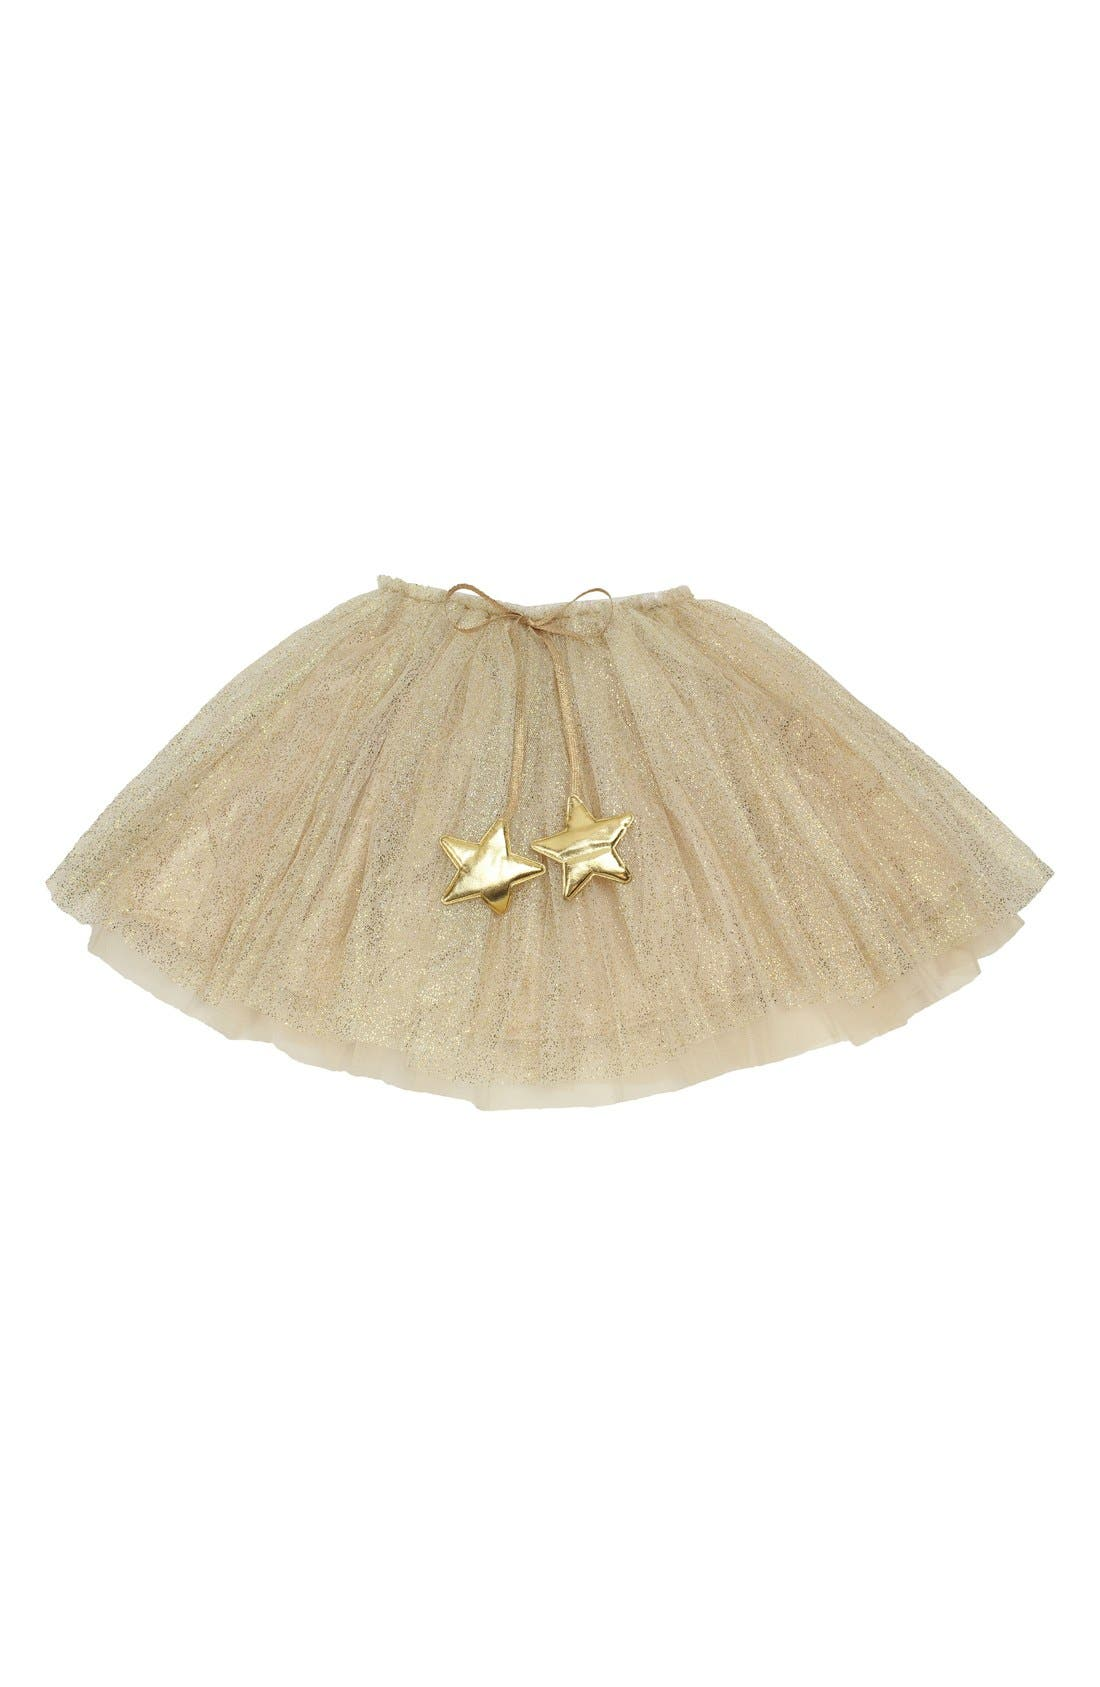 POCHEW Gold Glitter Star Tutu (Toddler Girls & Little Girls)